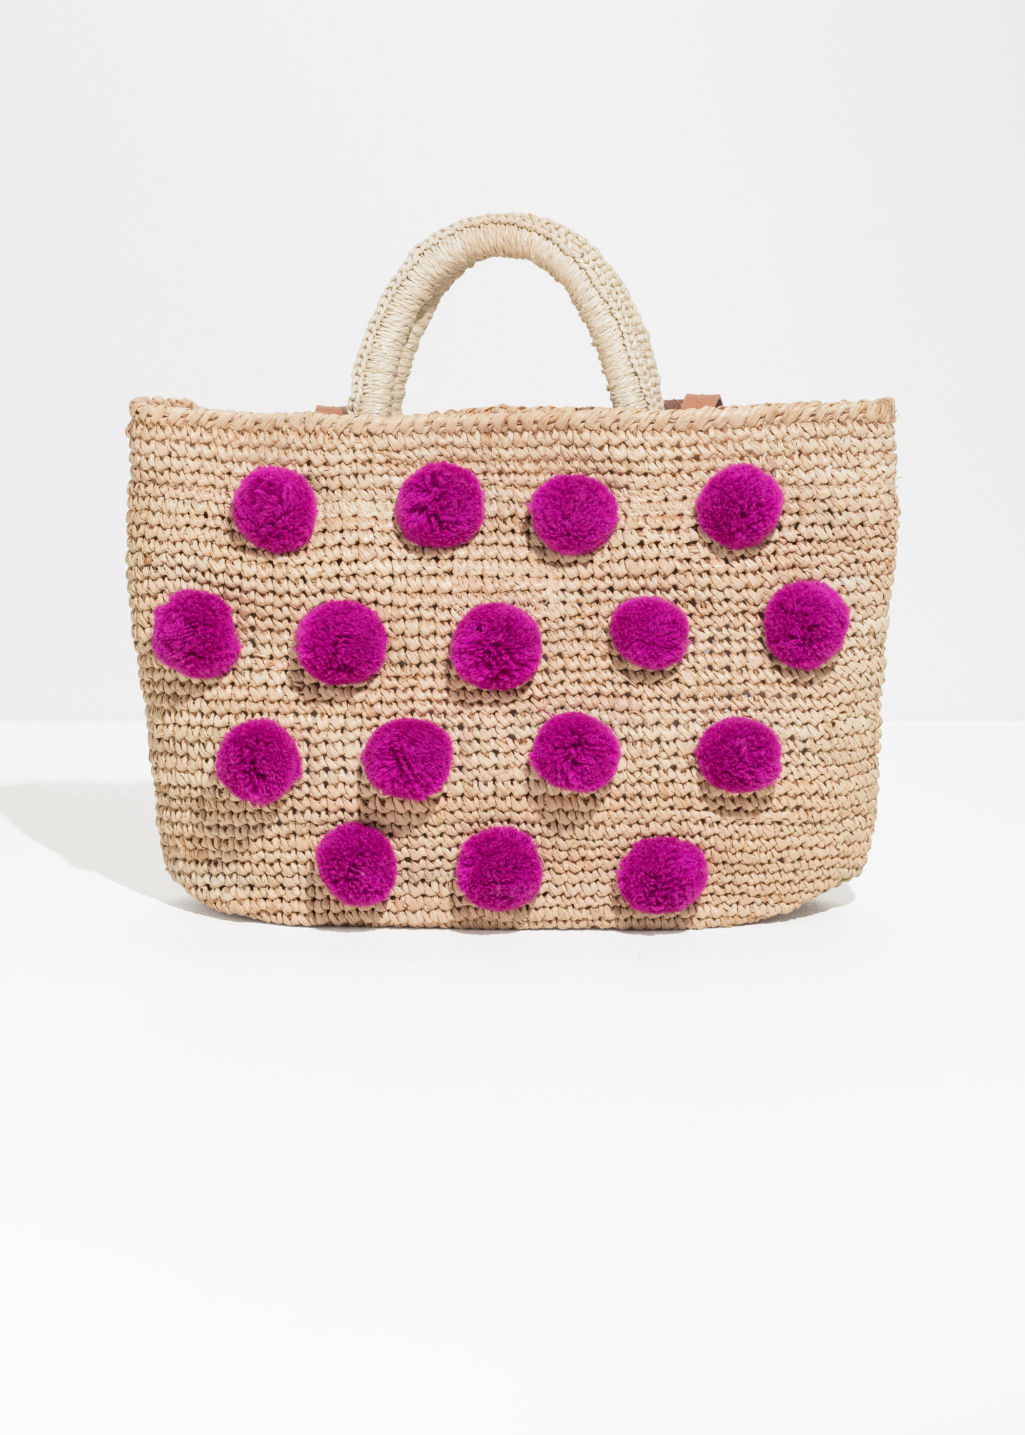 Embellished Woven Tote